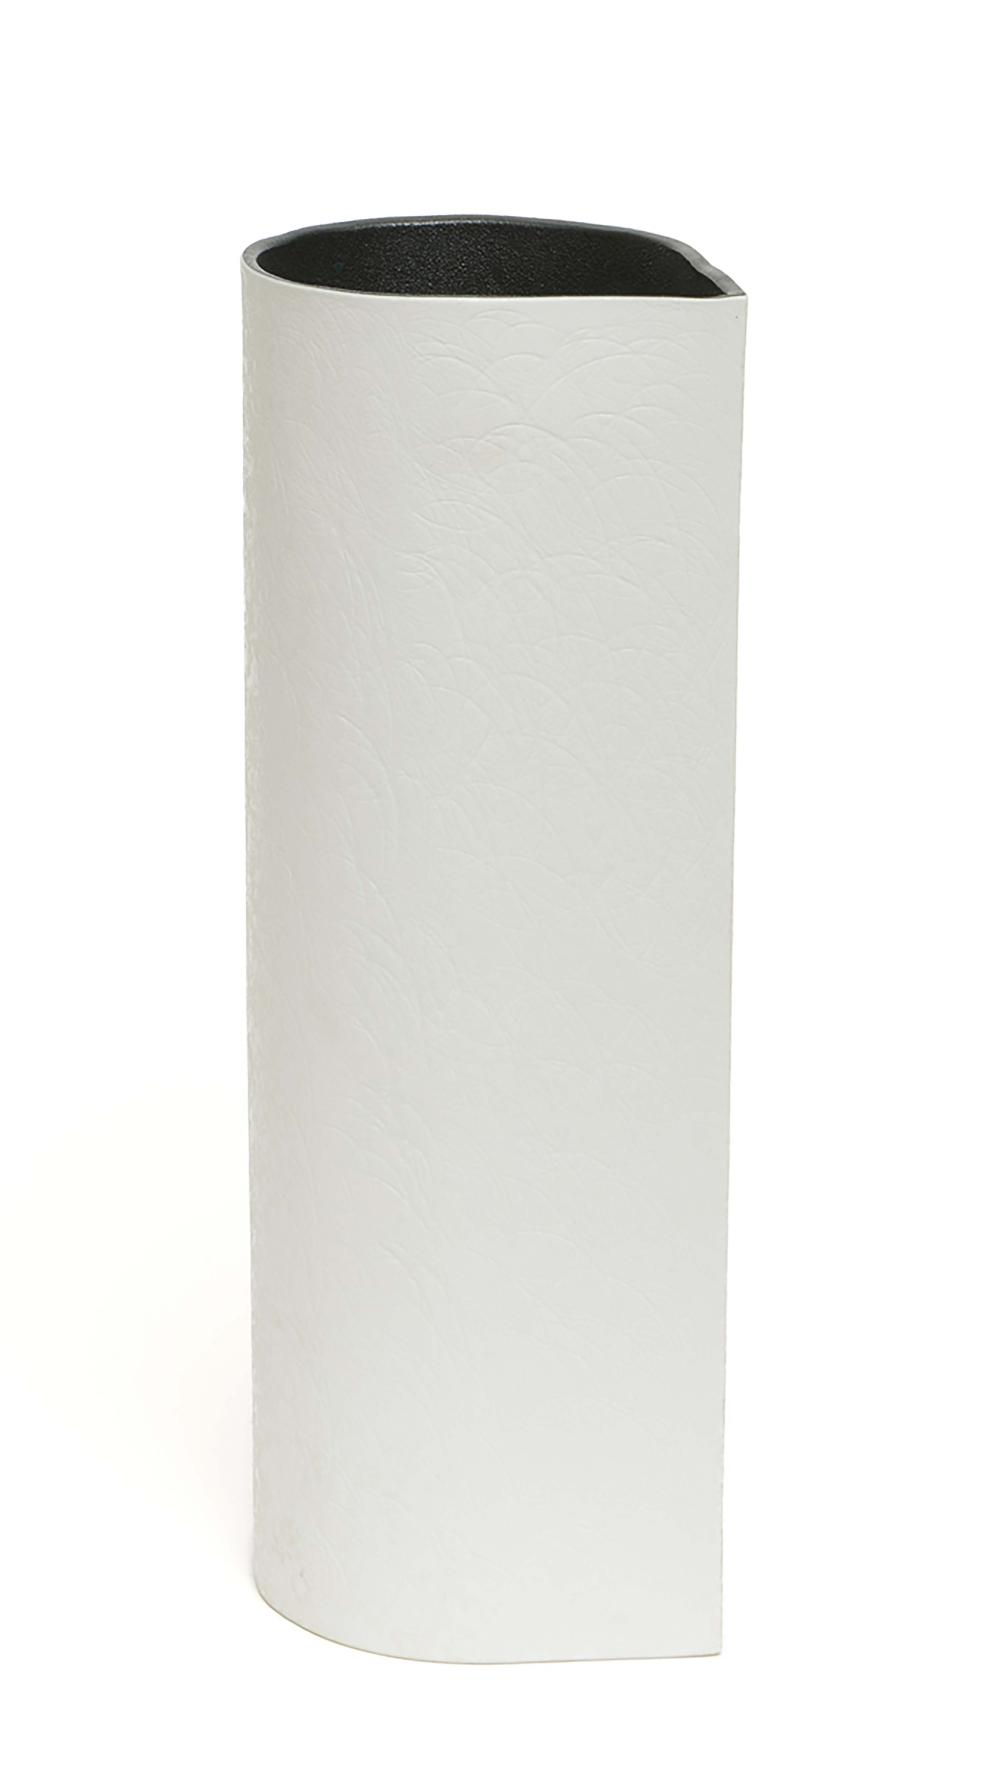 Tall thin porcelain vase, white on the outside and black on the inside in t